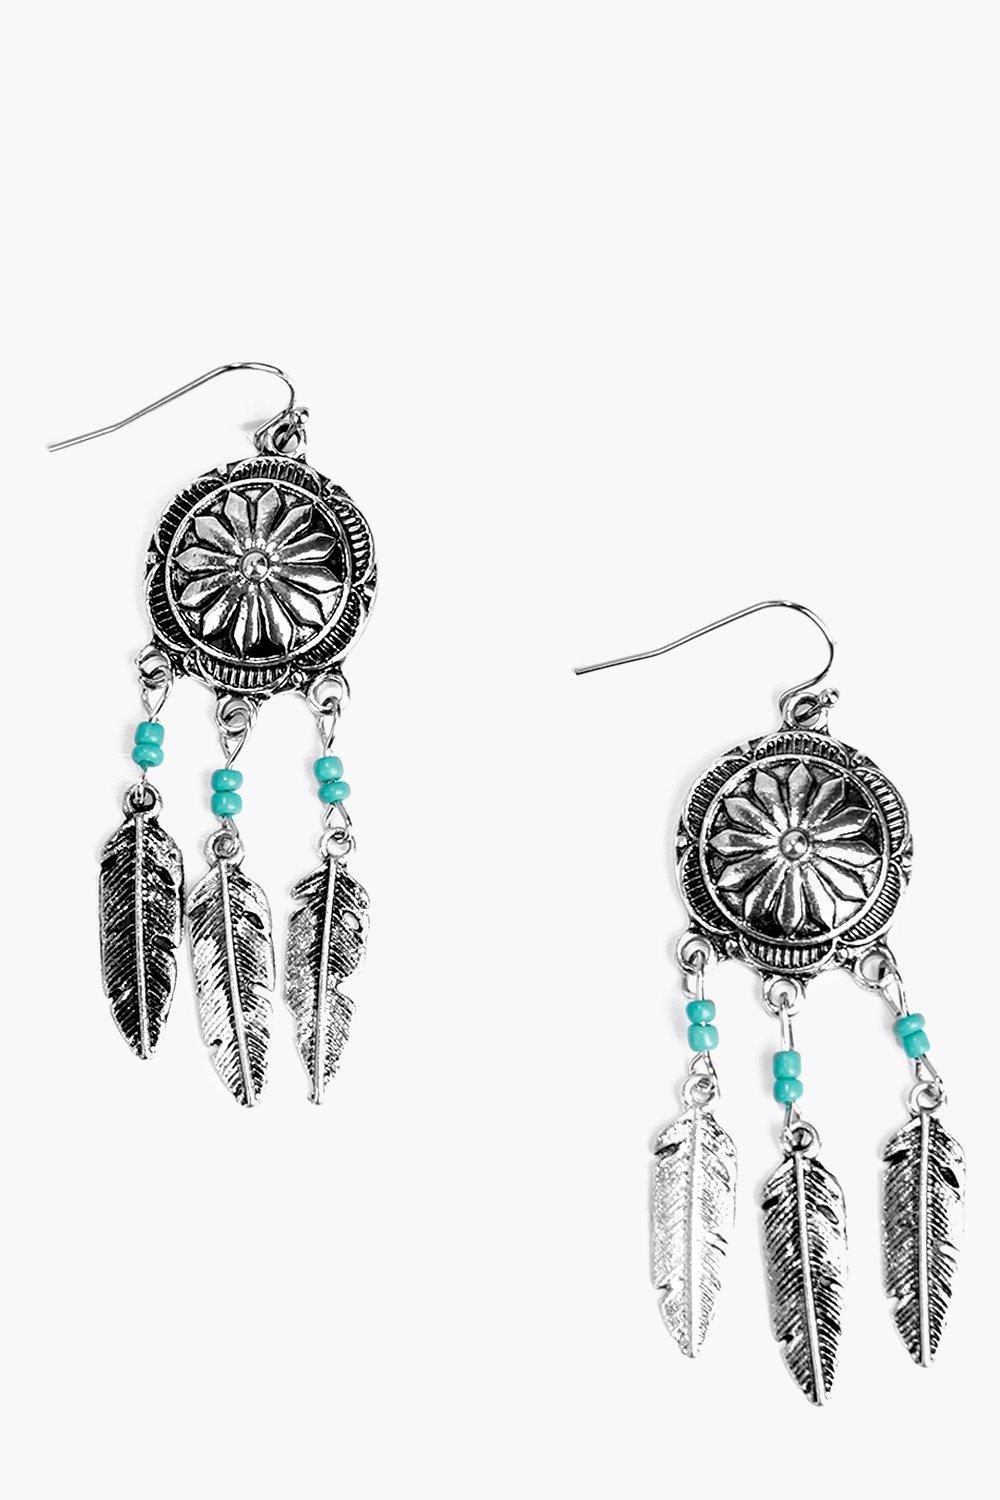 Eva Navaho Dream Catcher Feather Earrings